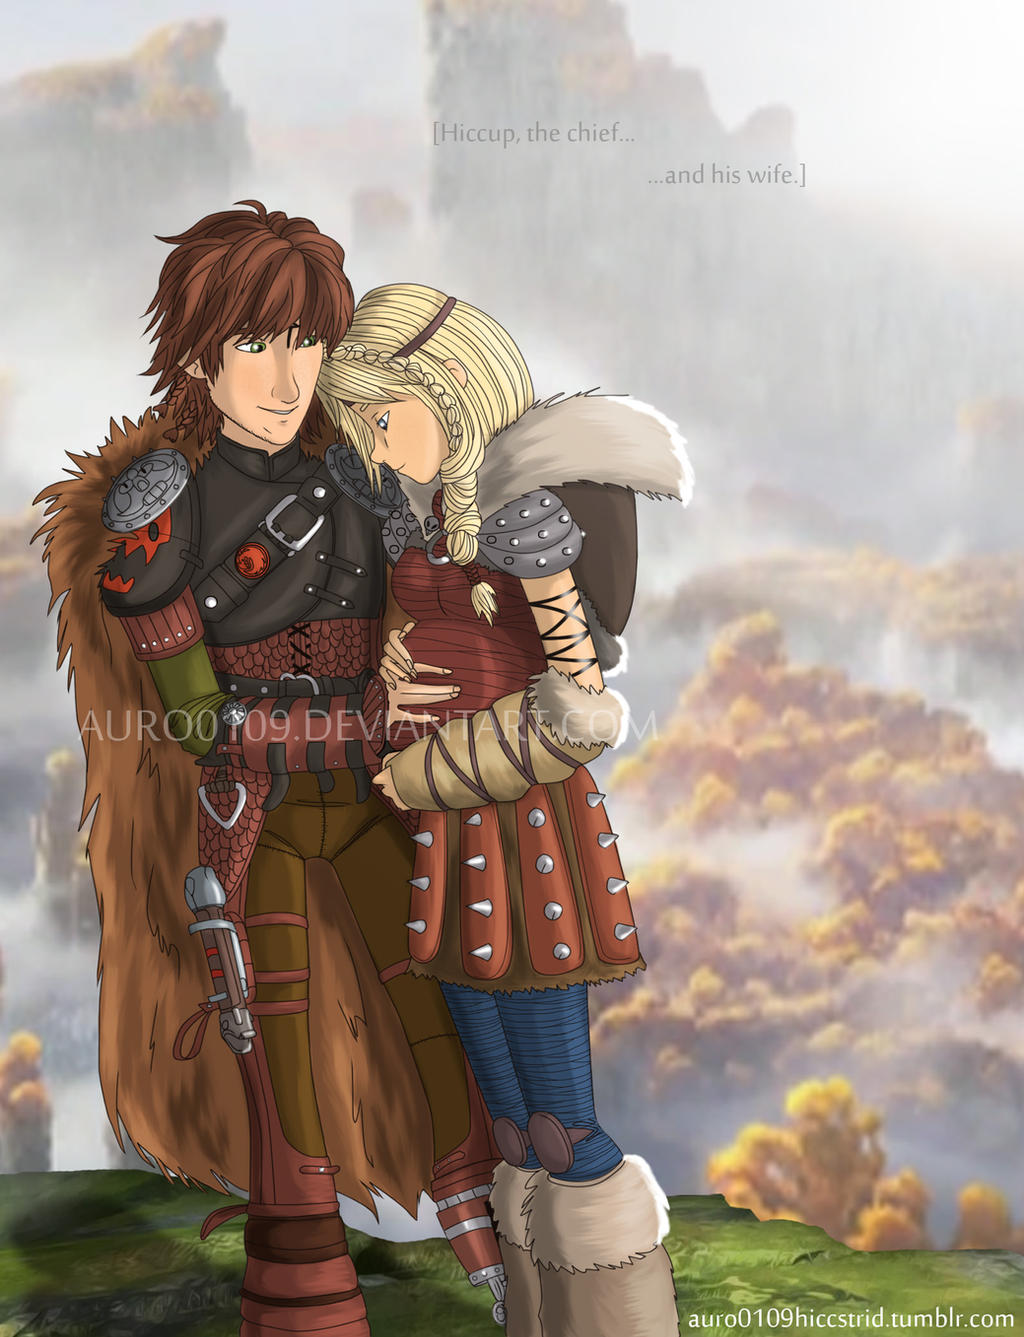 Hiccup the chief and his wife astrid by auro0109 on deviantart hiccup the chief and his wife astrid by auro0109 ccuart Image collections